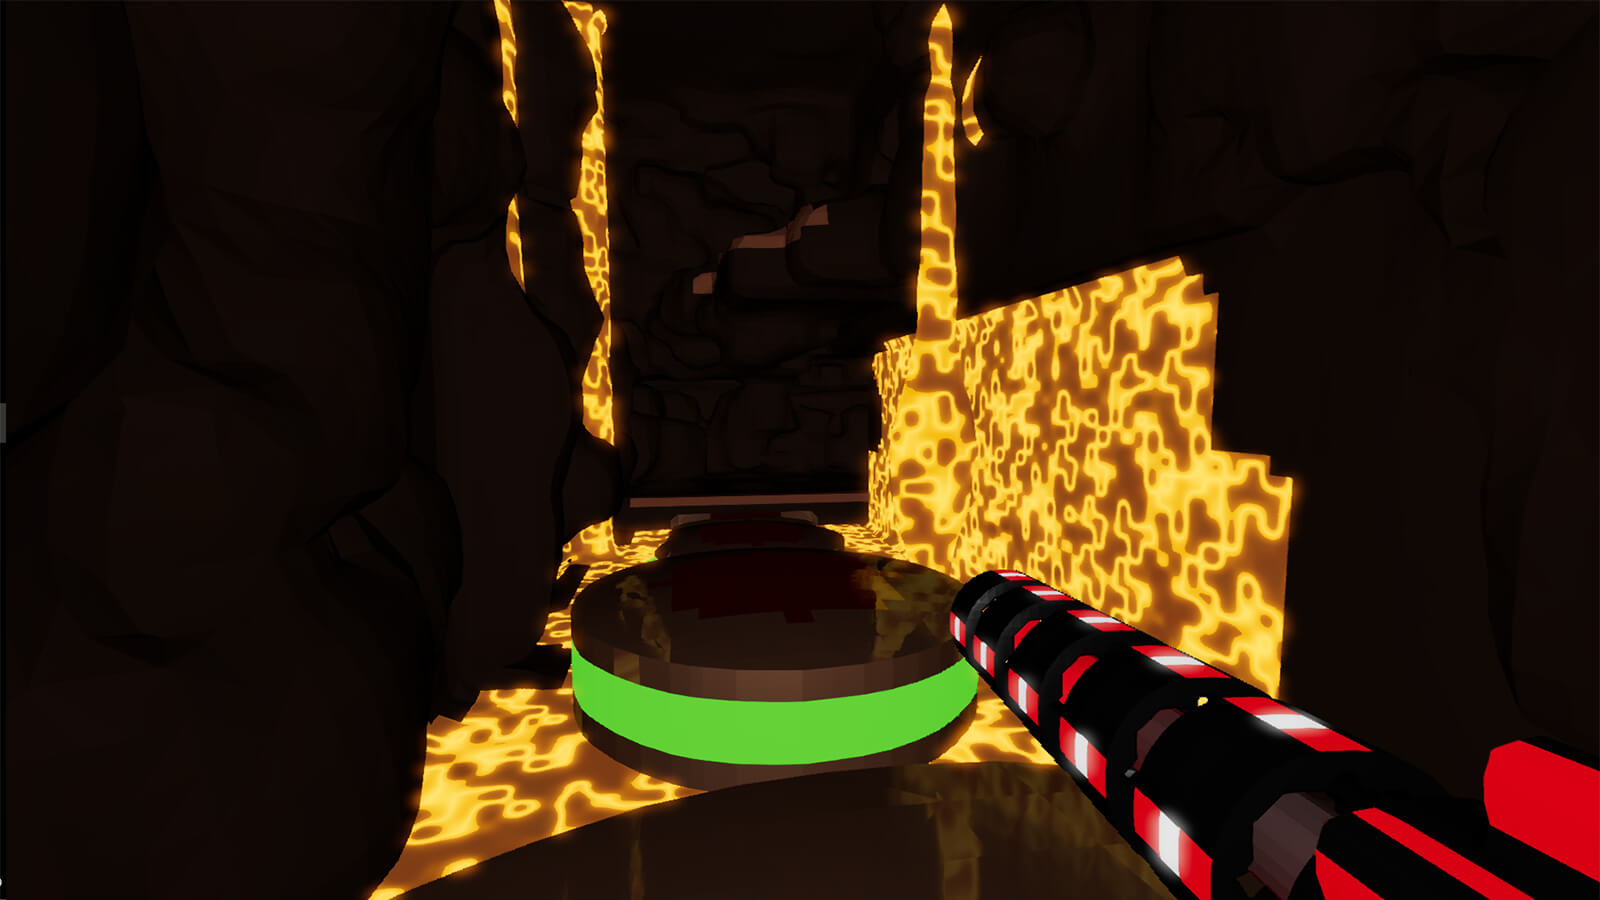 The player holds a long red gun as they navigate a lava-filled pit.